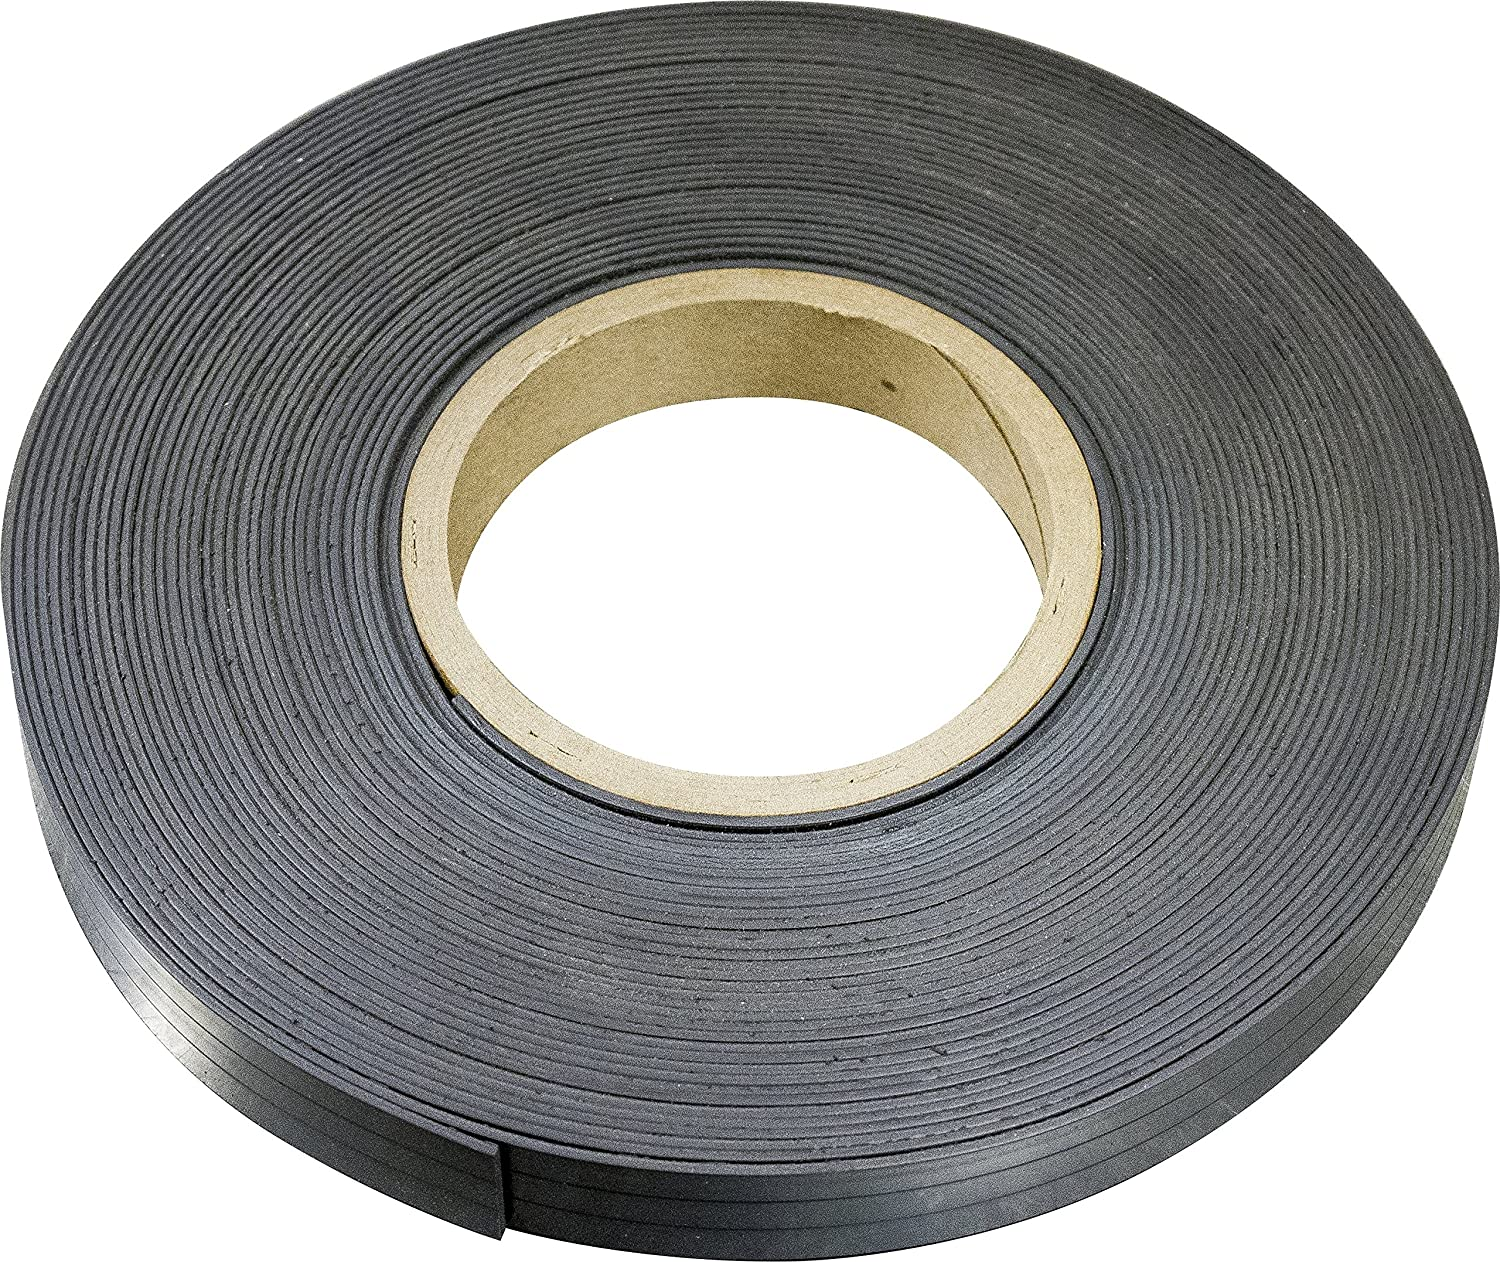 MAG-MATE MRN030X0050X025 Flexible Magnet Material without Adhesive, 0.030 x 1/2 x 25' 0.030 x 1/2 x 25' Industrial Magnetics Inc